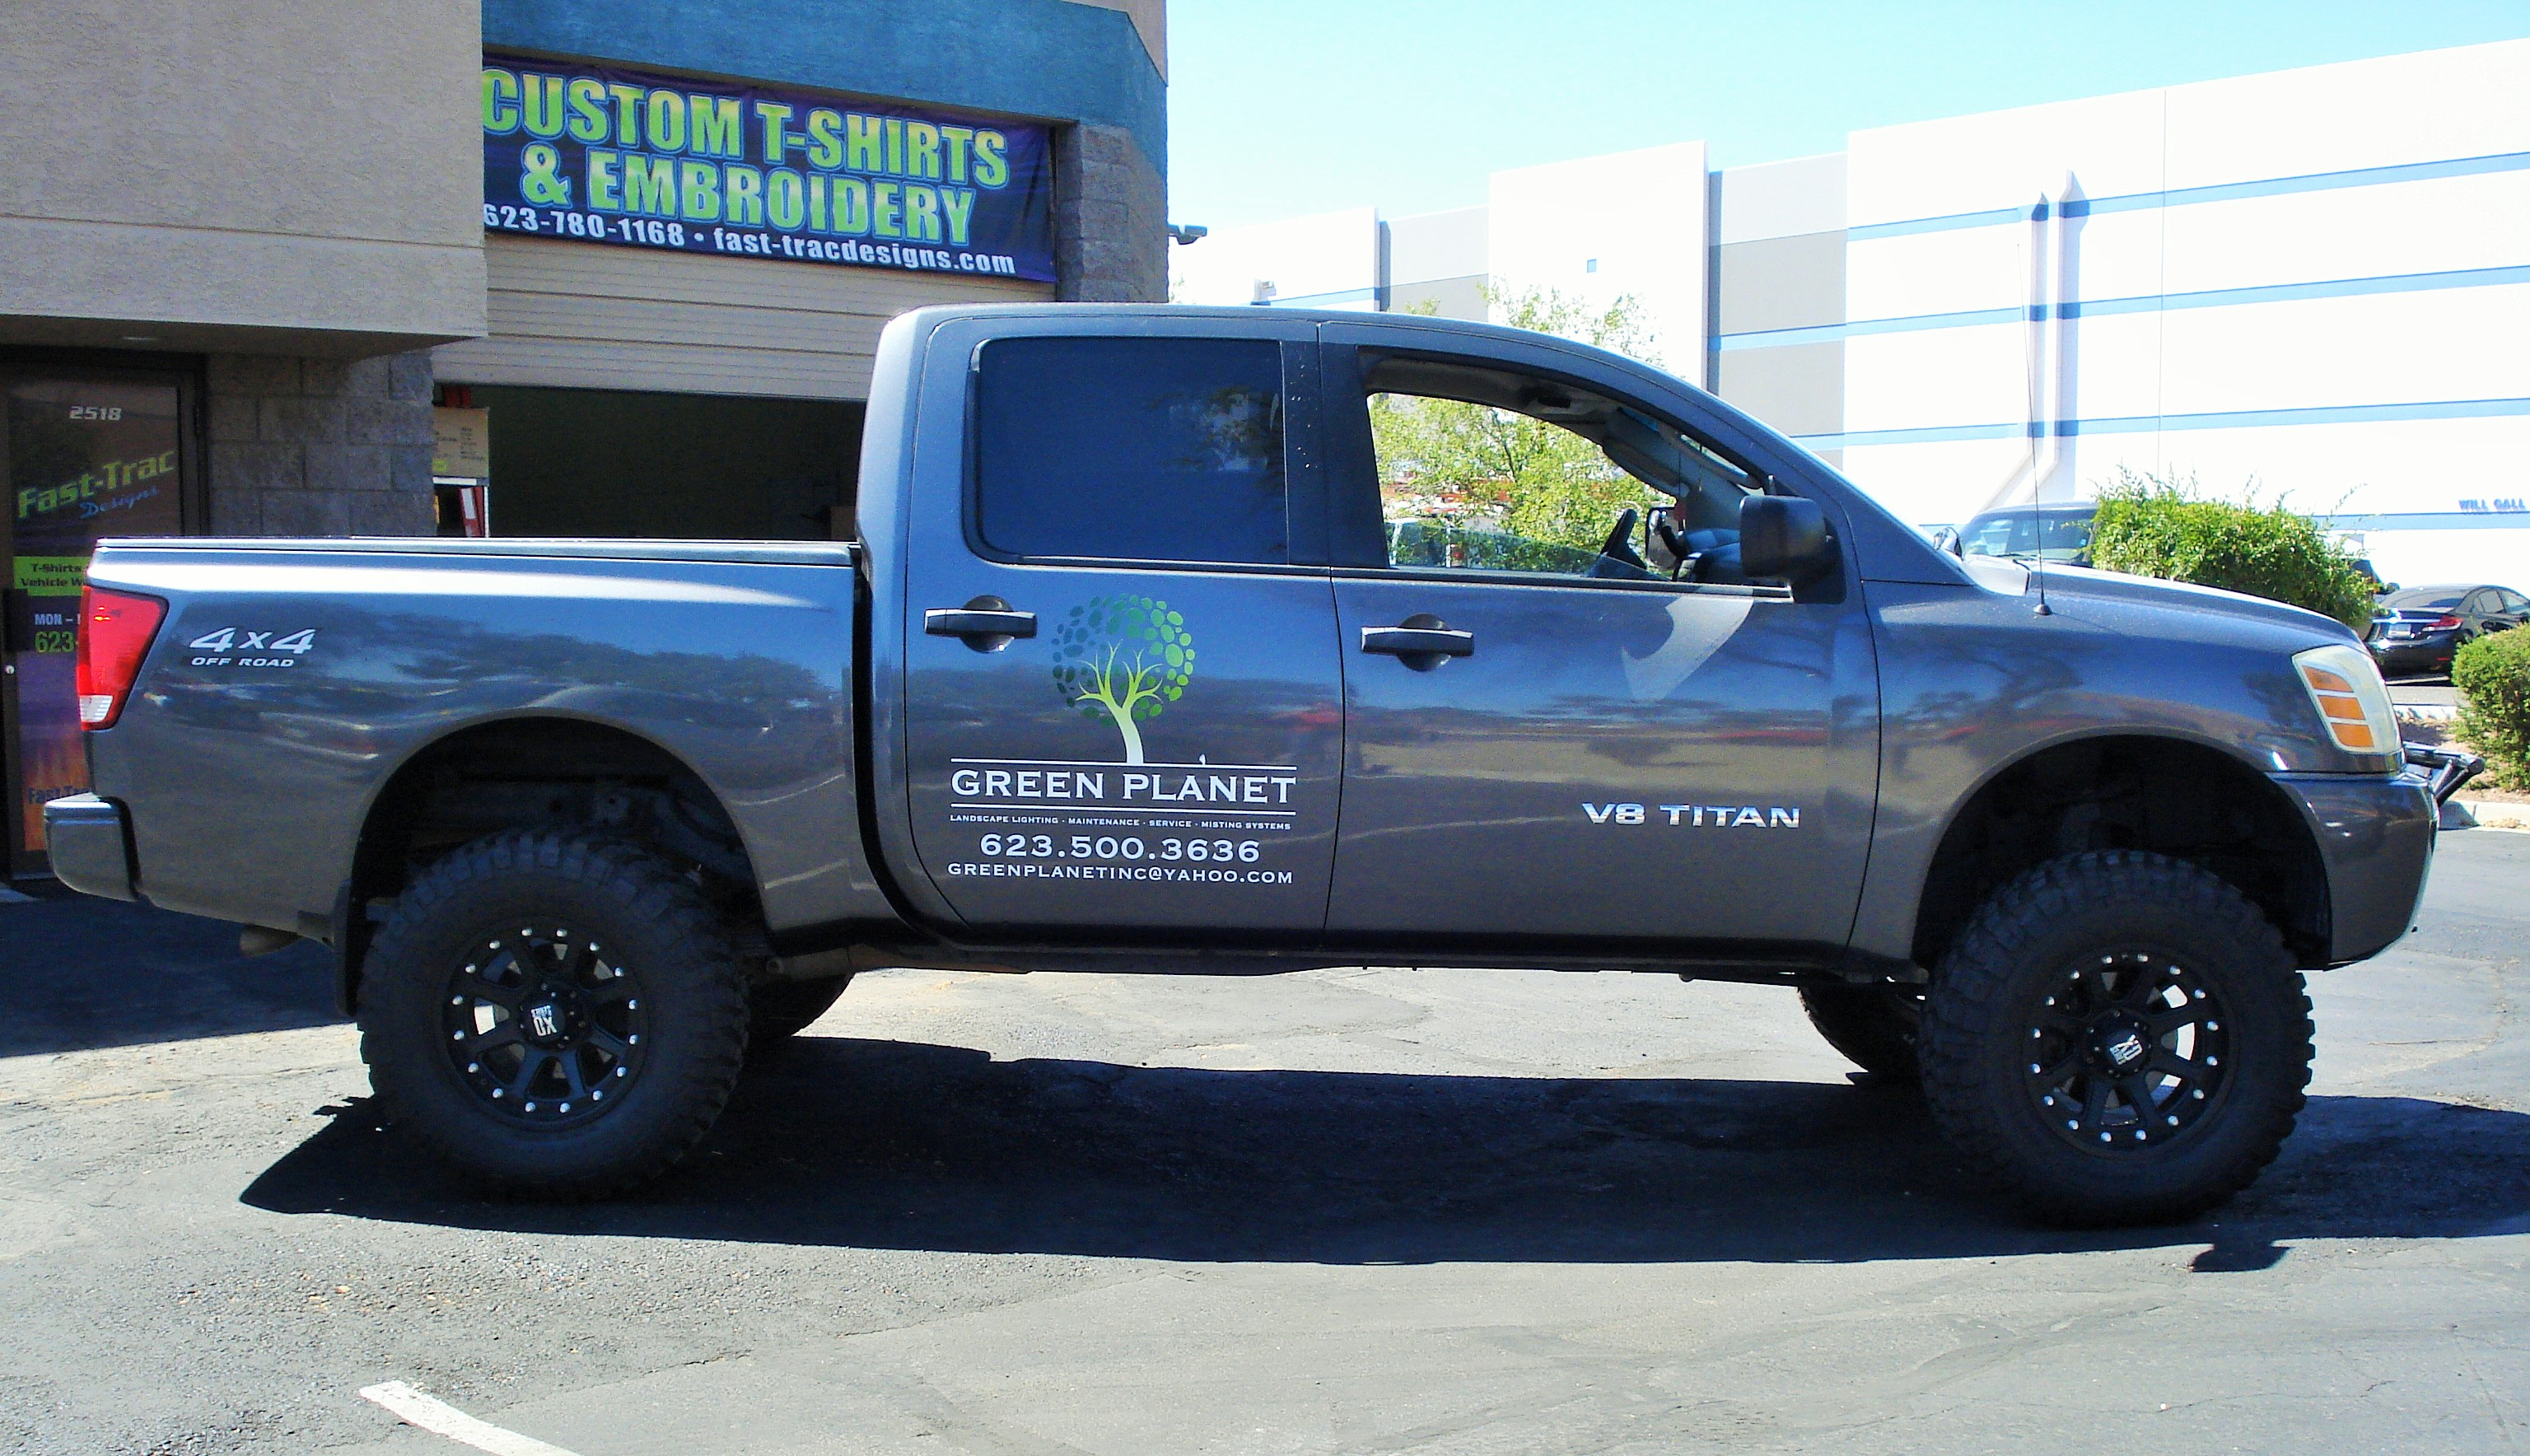 Fast Trac Designs Vehicle Wraps Amp Screen Printing